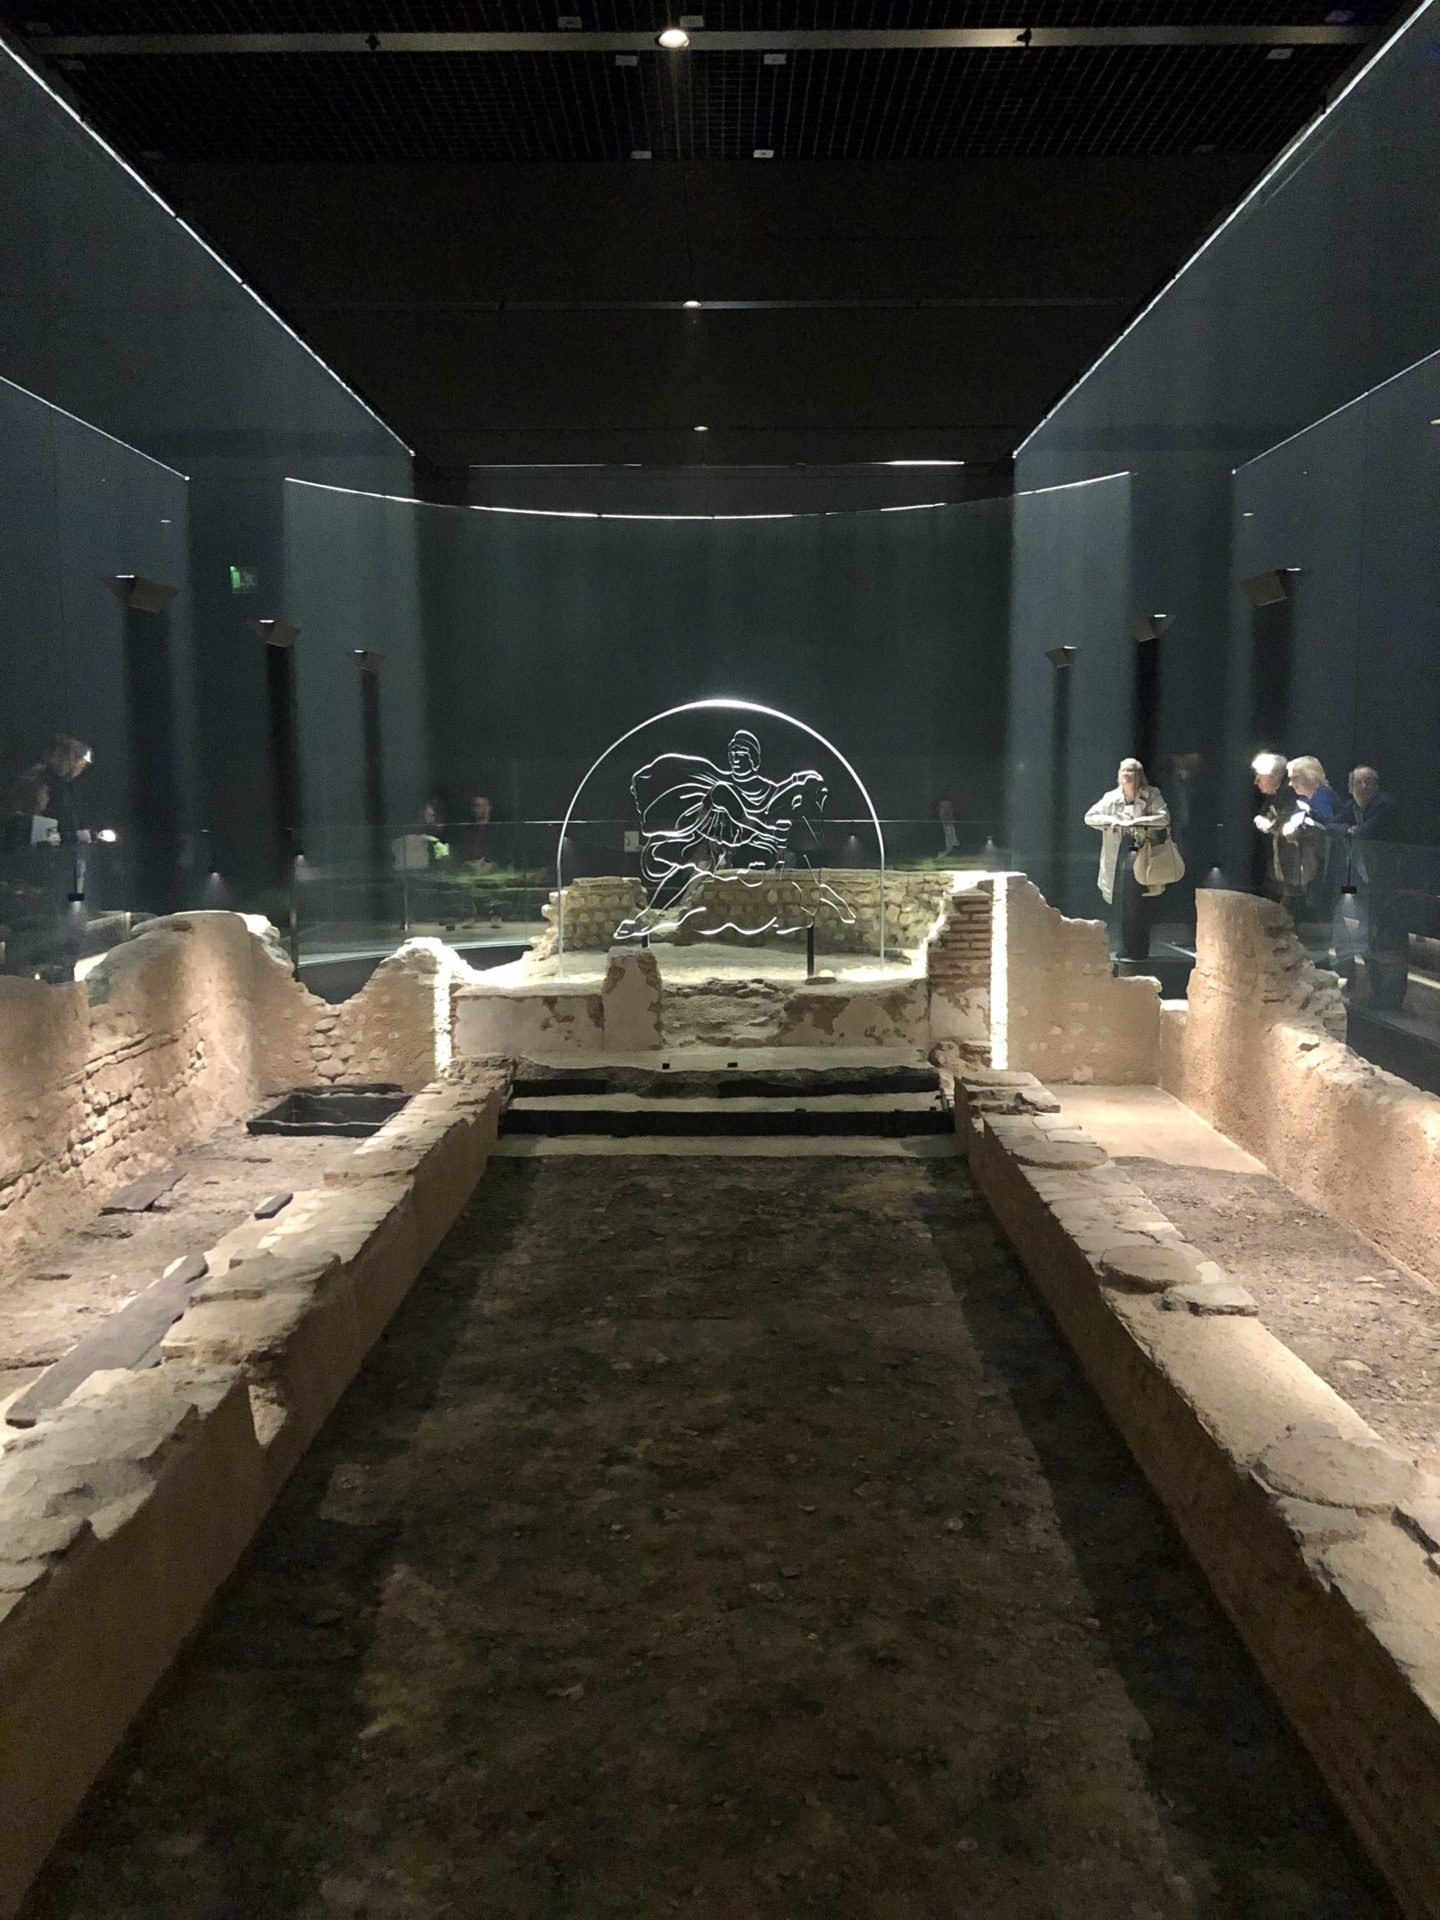 Temple of Mithras at the Bloomberg Arcade